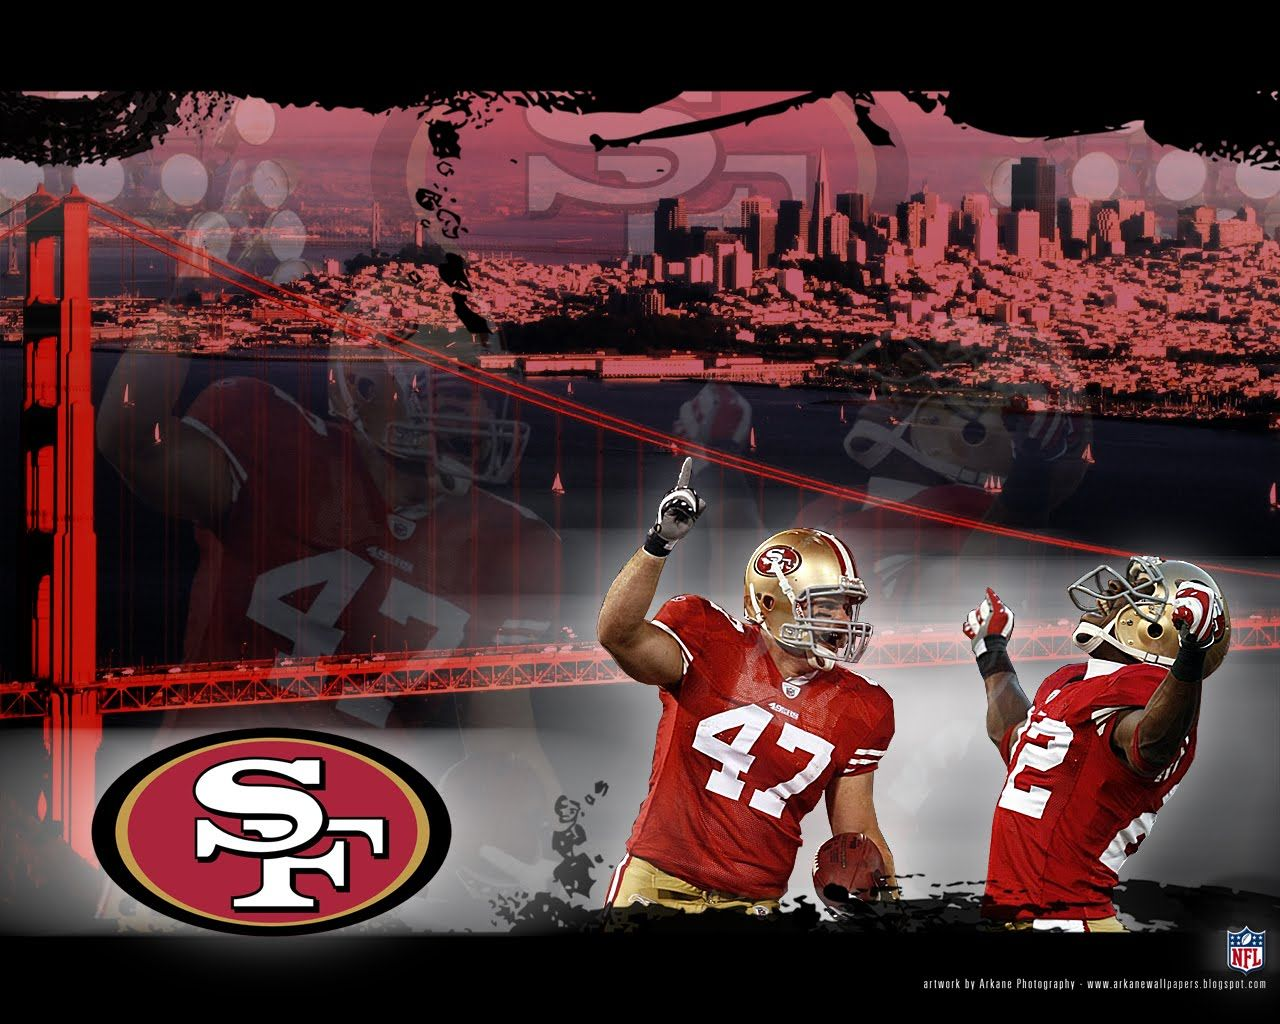 Image detail for 28 san francisco 49ers wallpaper c49ers free image detail for 28 san francisco 49ers wallpaper c49ers free computer wallpapers voltagebd